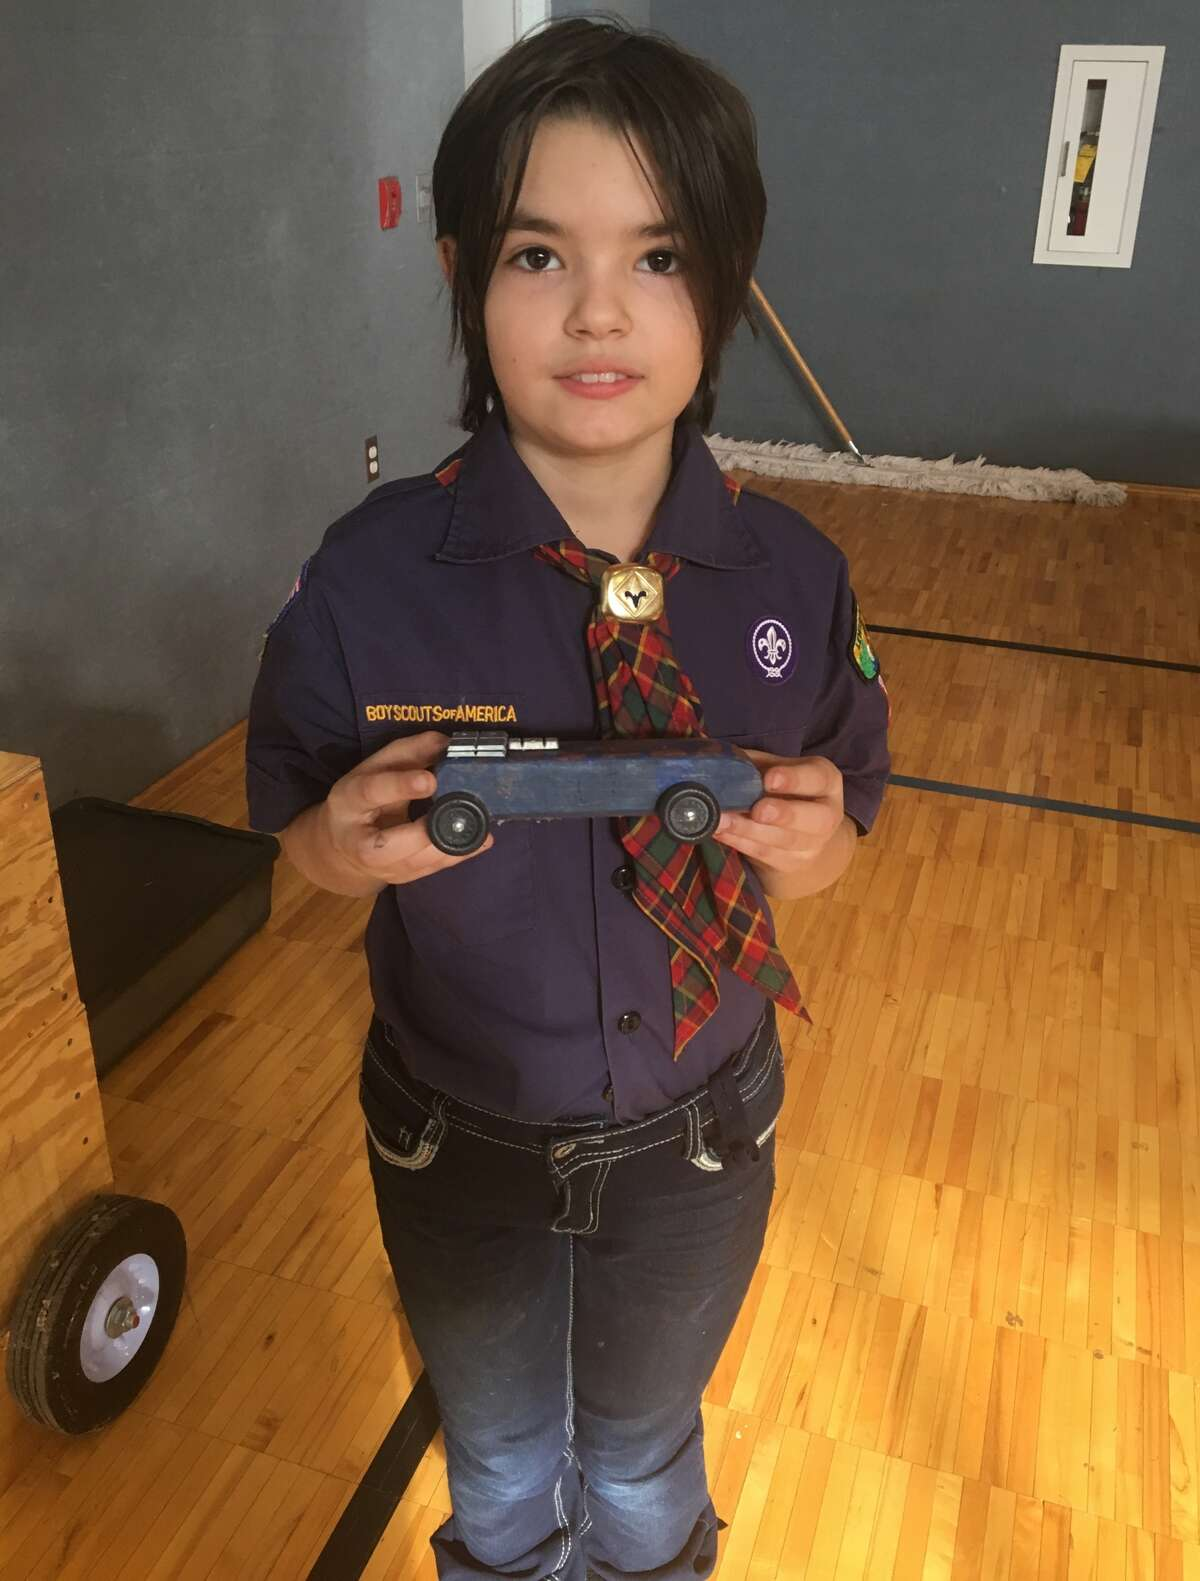 Mia Pinski, pictured, was one three young girls who took part in the event now that the Boy Scouts of America are allowing female members.